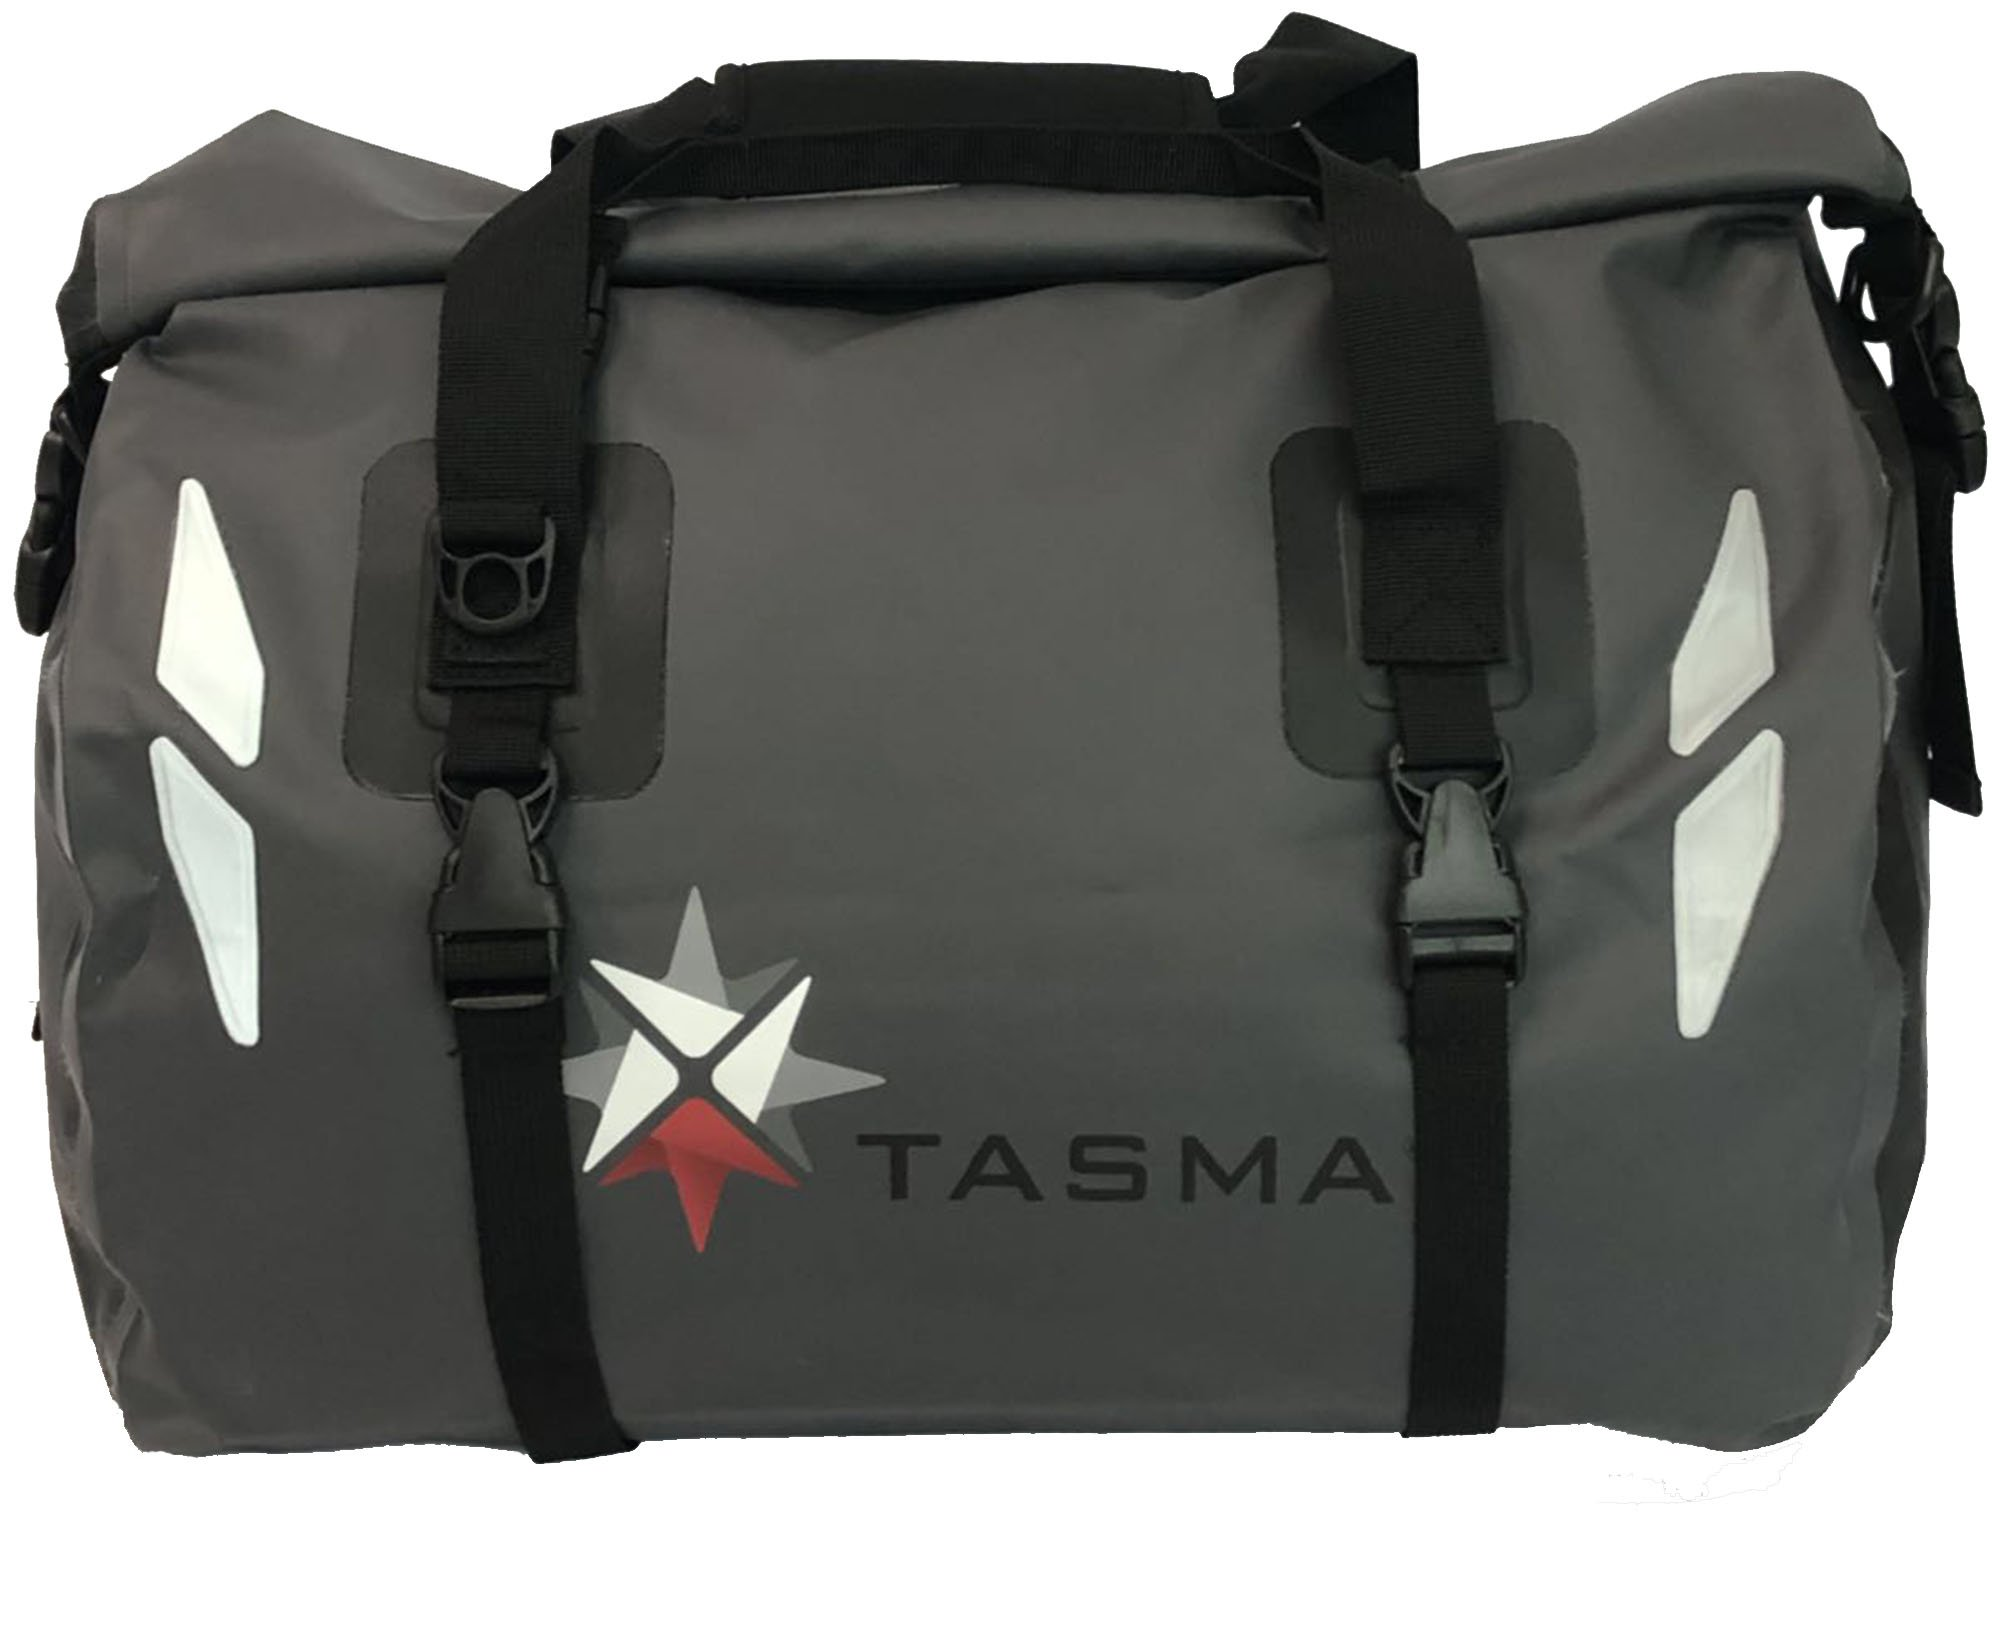 Tasma Waterproof Duffel Bag 45L with Roll Top | Non-PVC, Ultrasonic Welded Seams, Carry Handles with Padded Velcro Cover, Adjustable Paddled Shoulder Strap (Dark Grey)